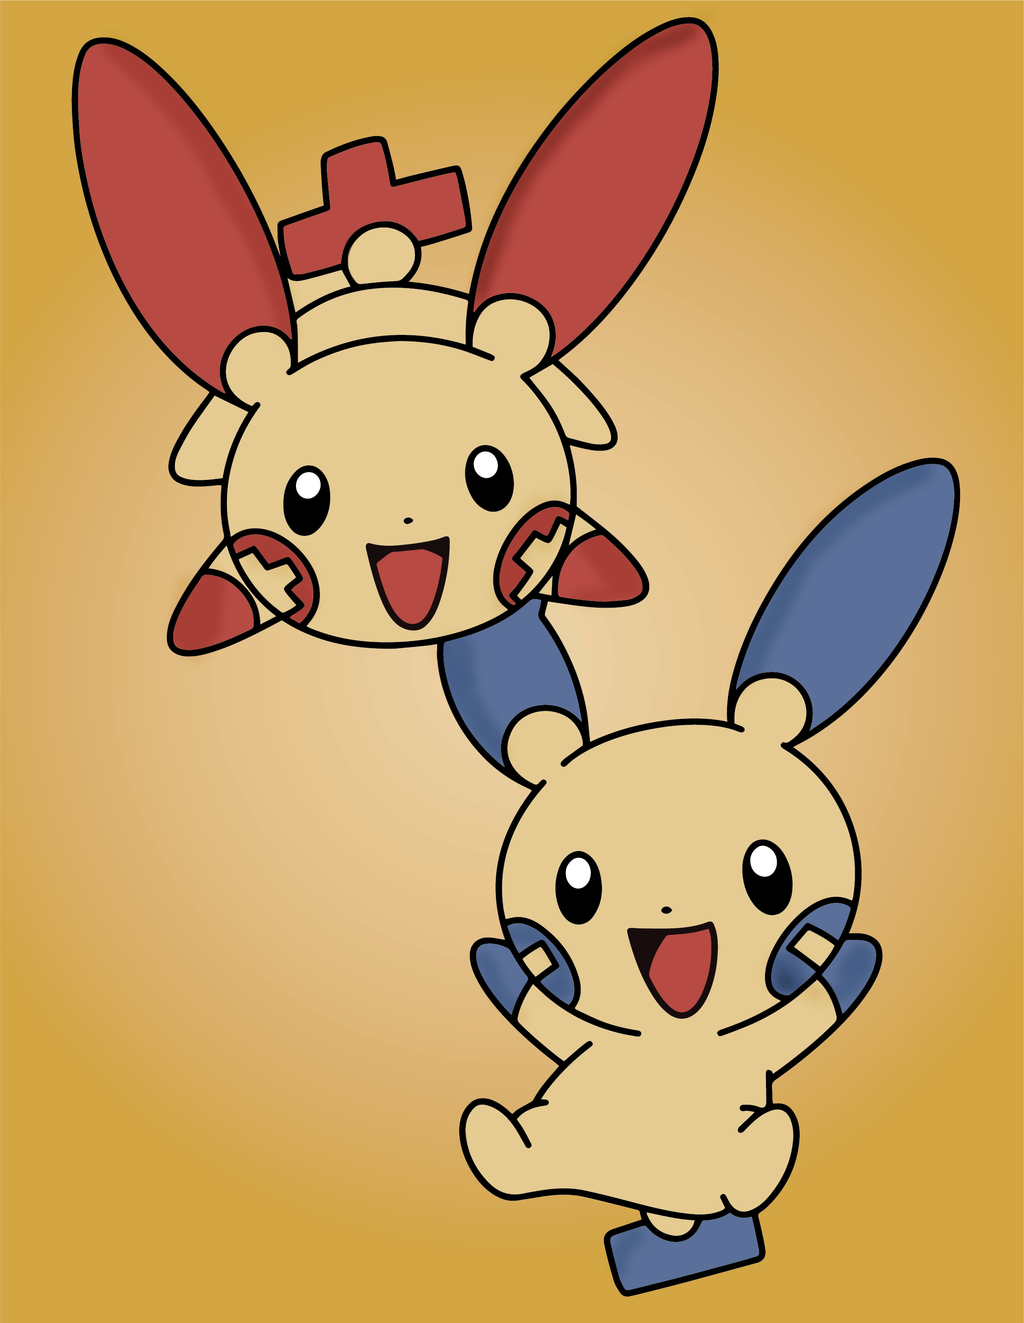 Plusle and Minun! Wallpaper! by Animebirdy on DeviantArt.